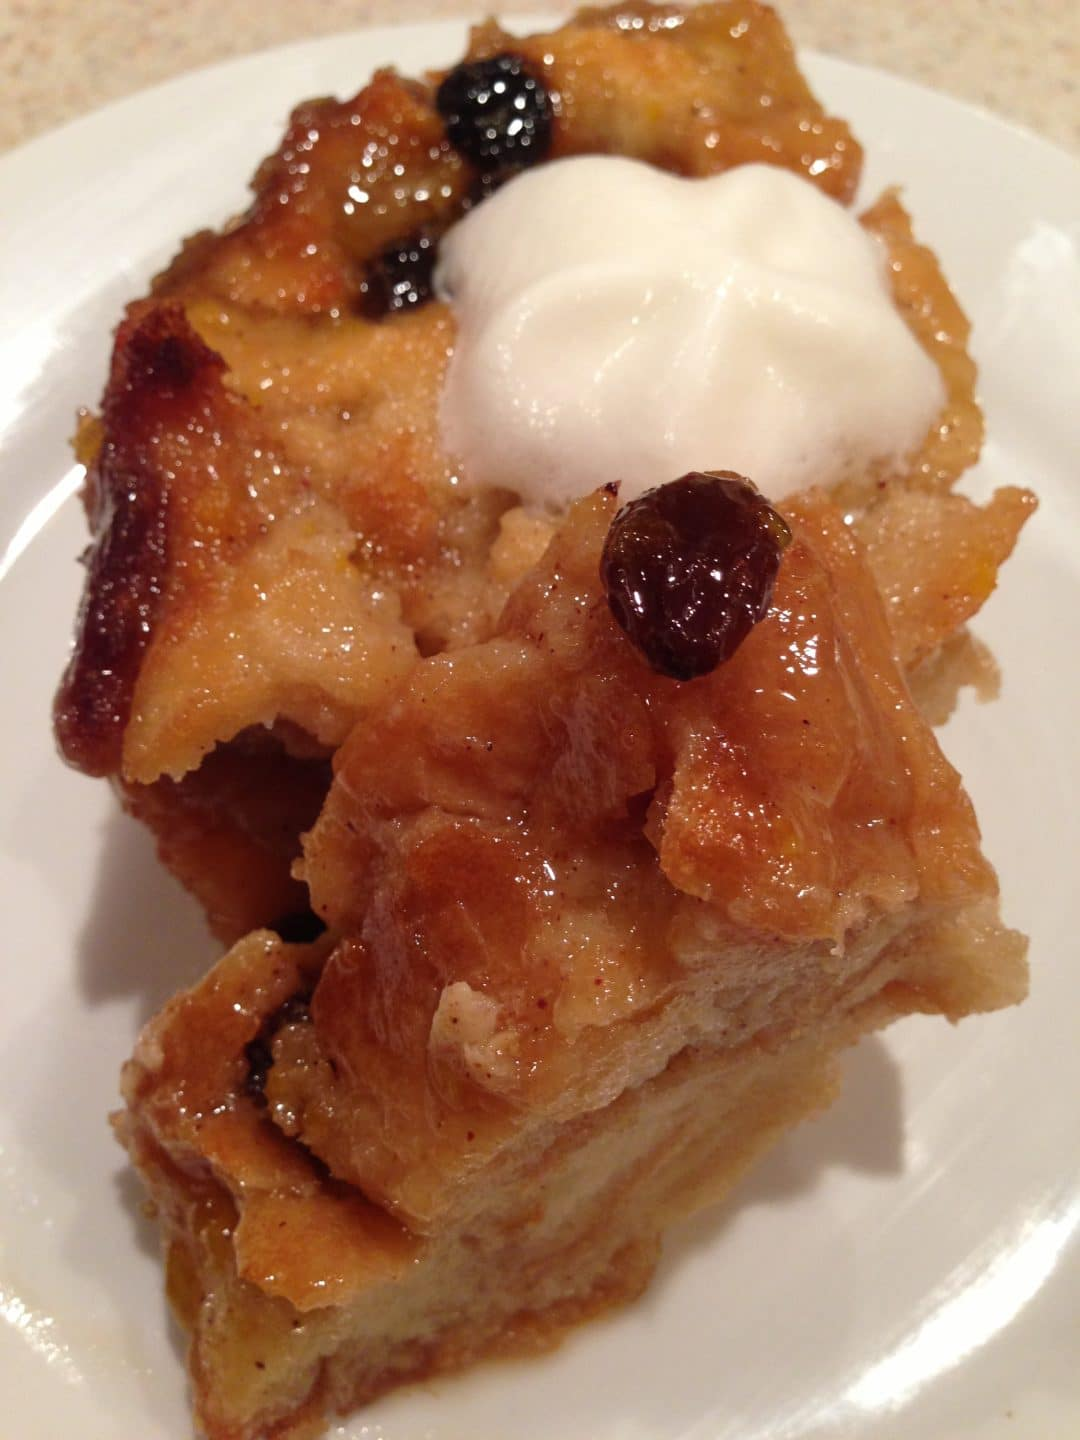 Bread Pudding with Brown Sugar Sauce is a sweet and delicious treat that is perfect when made with crusty bread and few ingredients. Topped with a brown sugar sauce that makes it extra tasty. simplylakita.com #breadpudding #dessert